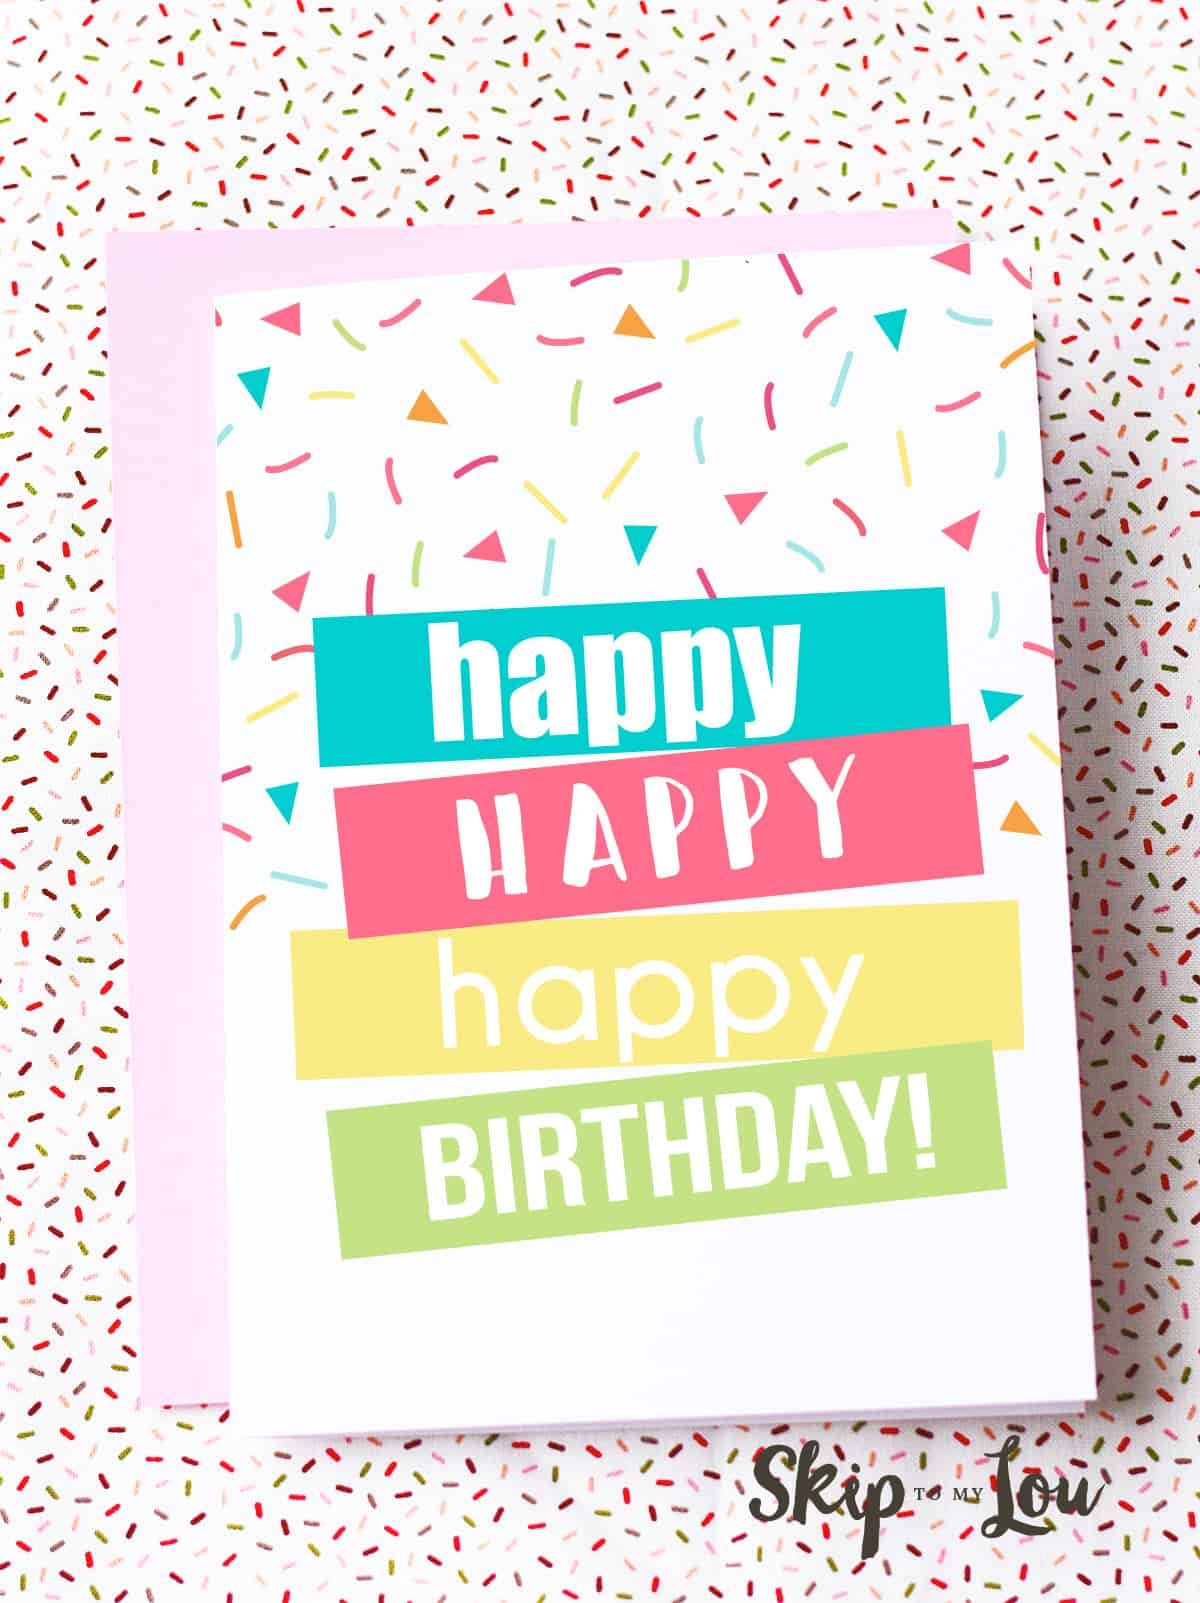 graphic about Free Printable Birthday Cards for Adults identify Free of charge Printable Birthday Playing cards Miss In direction of My Lou